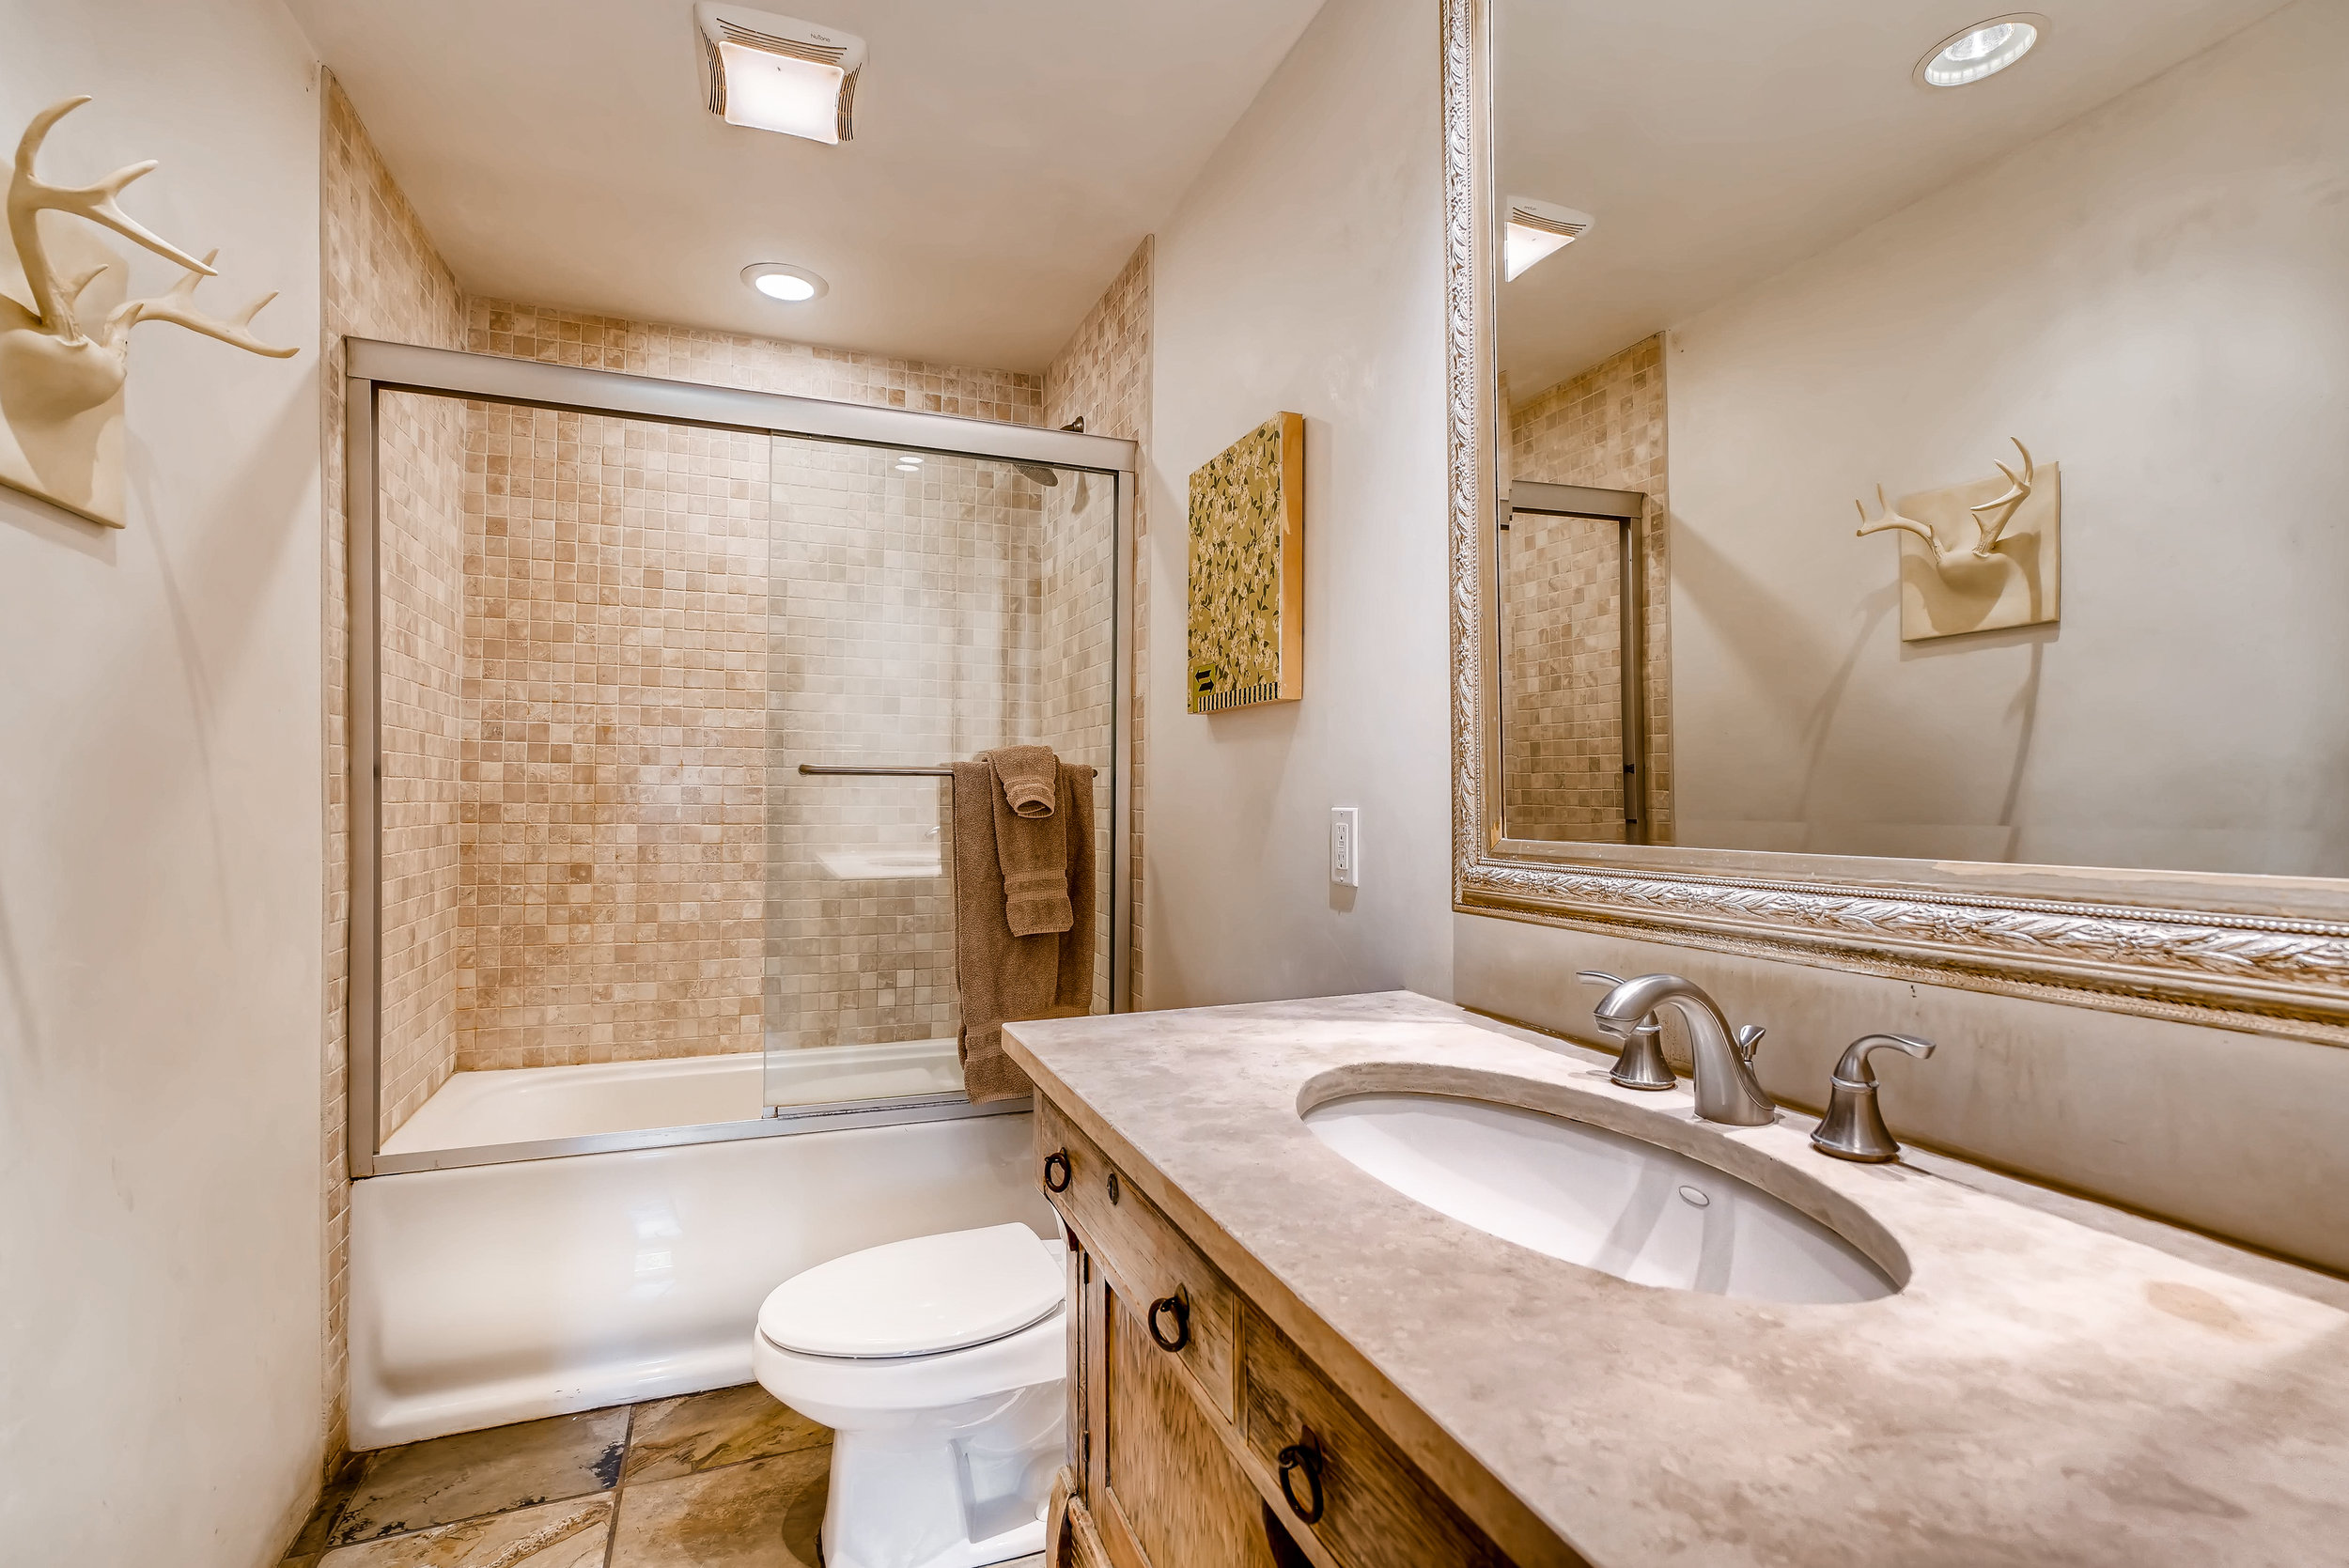 203 Laughlin Santa Fe NM 87505-print-008-5-Master Bathroom-3600x2403-300dpi.jpg